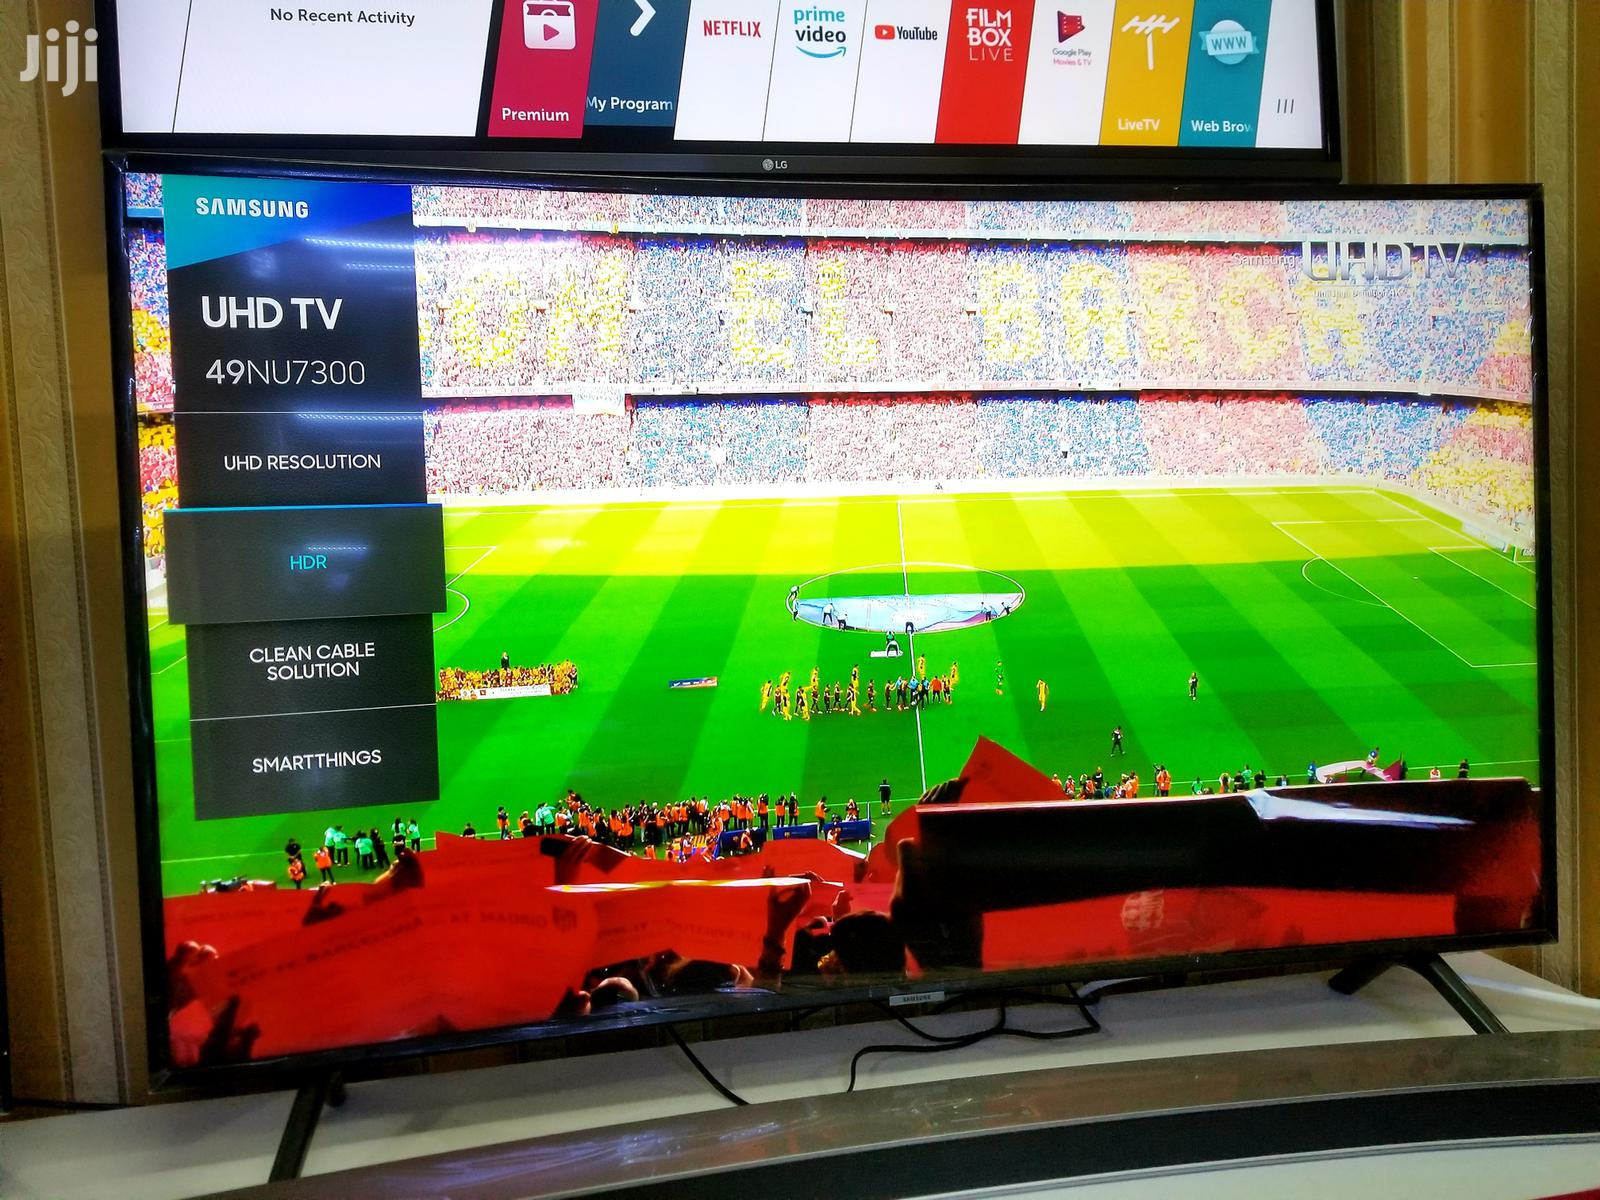 49inches Curved Samsung Smart UHD 4k TV